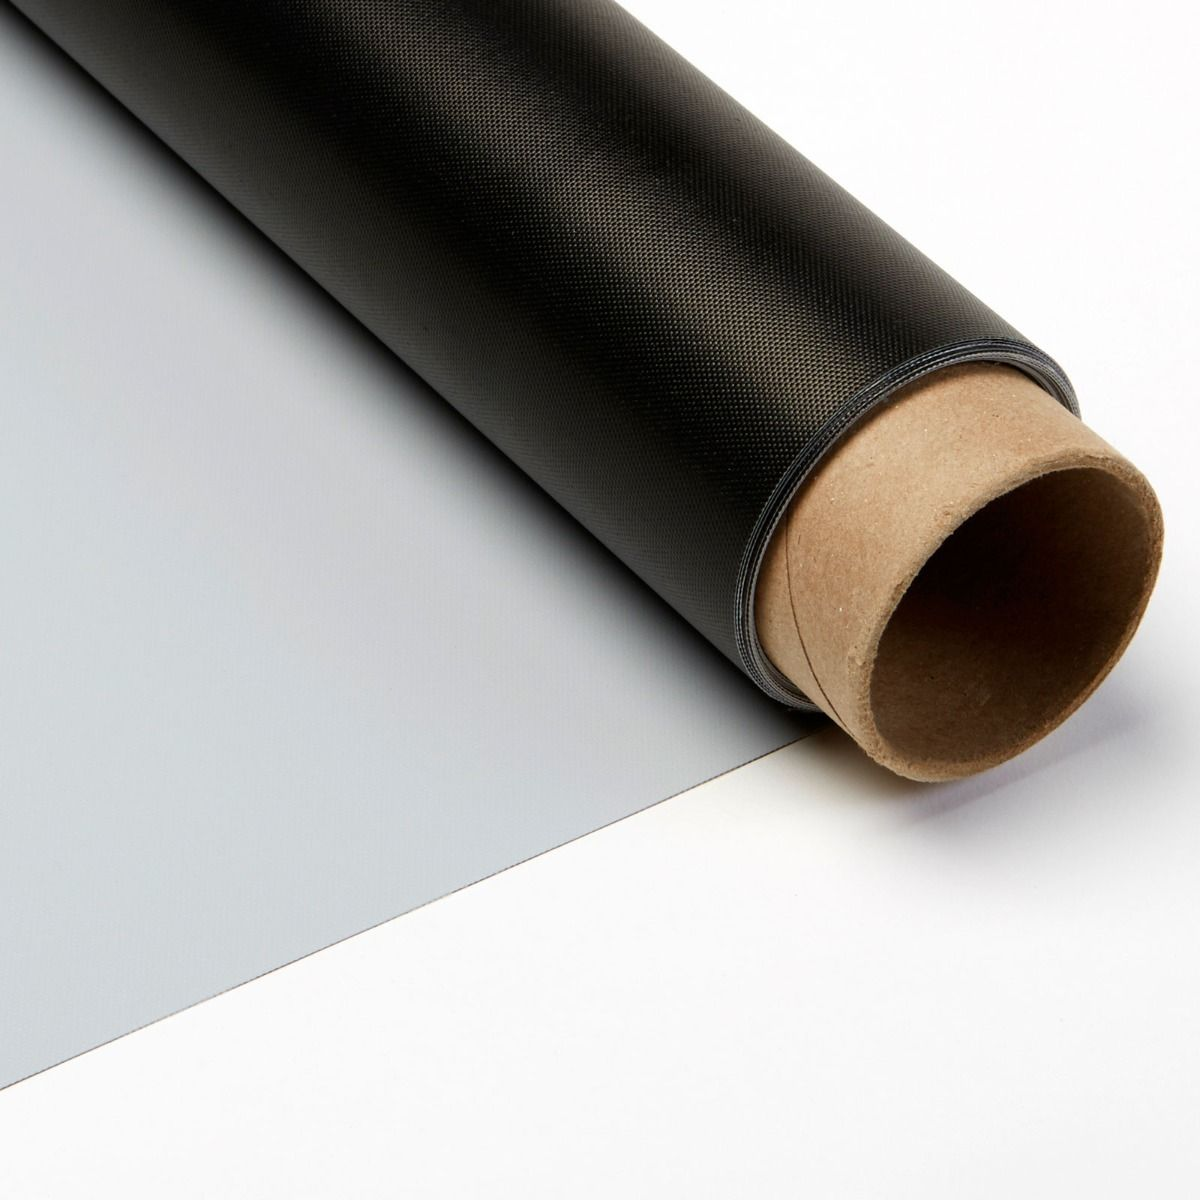 ProGray Screen Material Shipping in a Tube